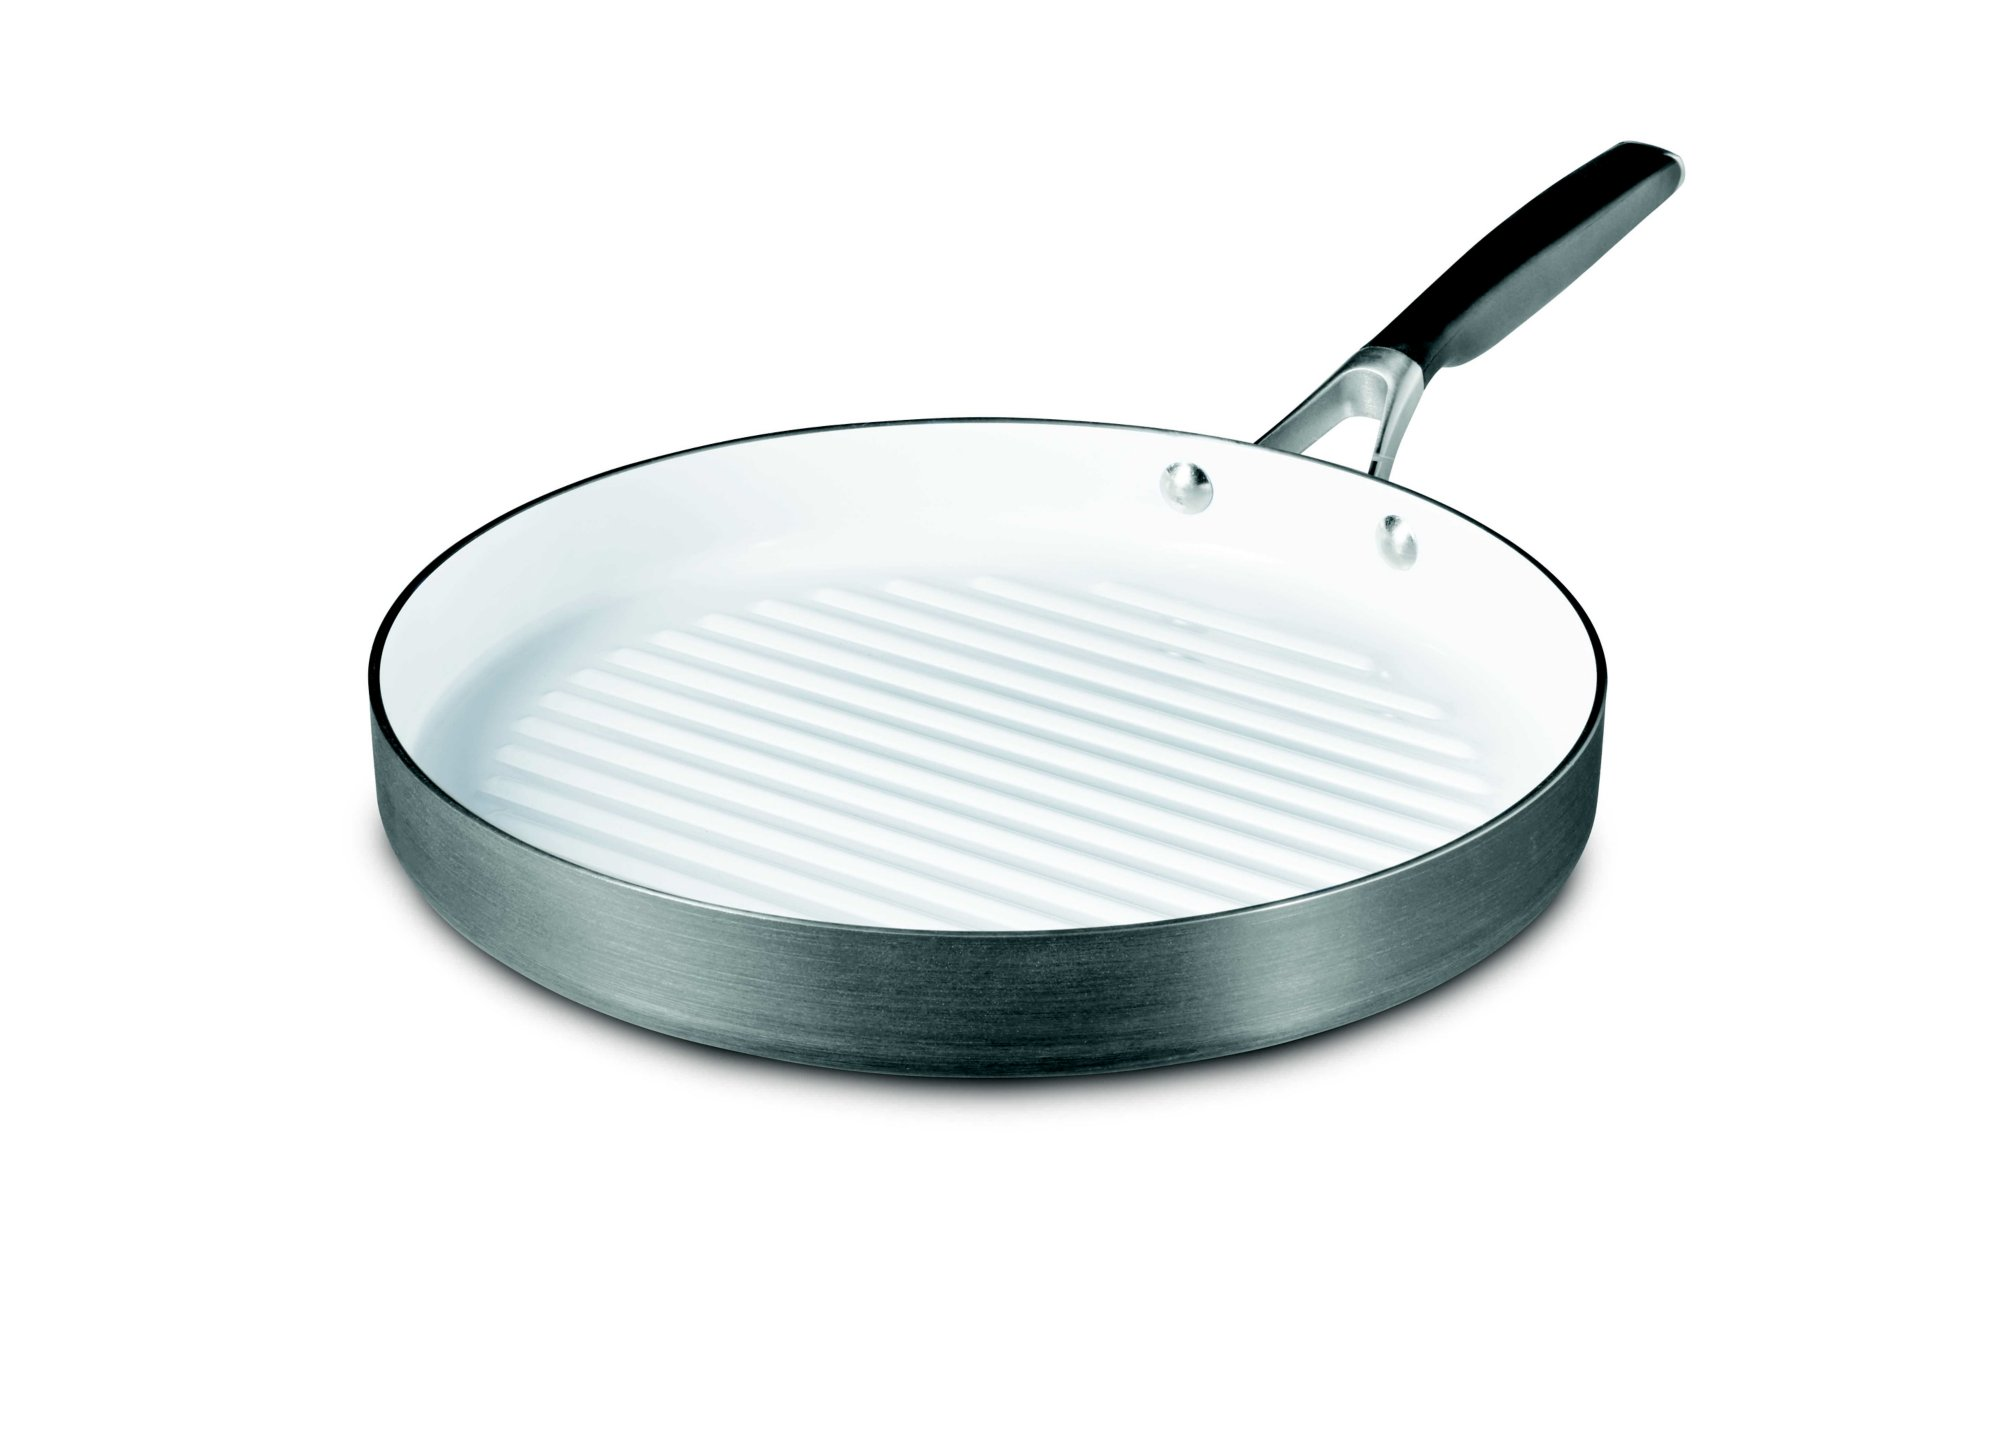 Select by Calphalon Hard-Anodized Ceramic Nonstick 12-Inch Round Grill Pan